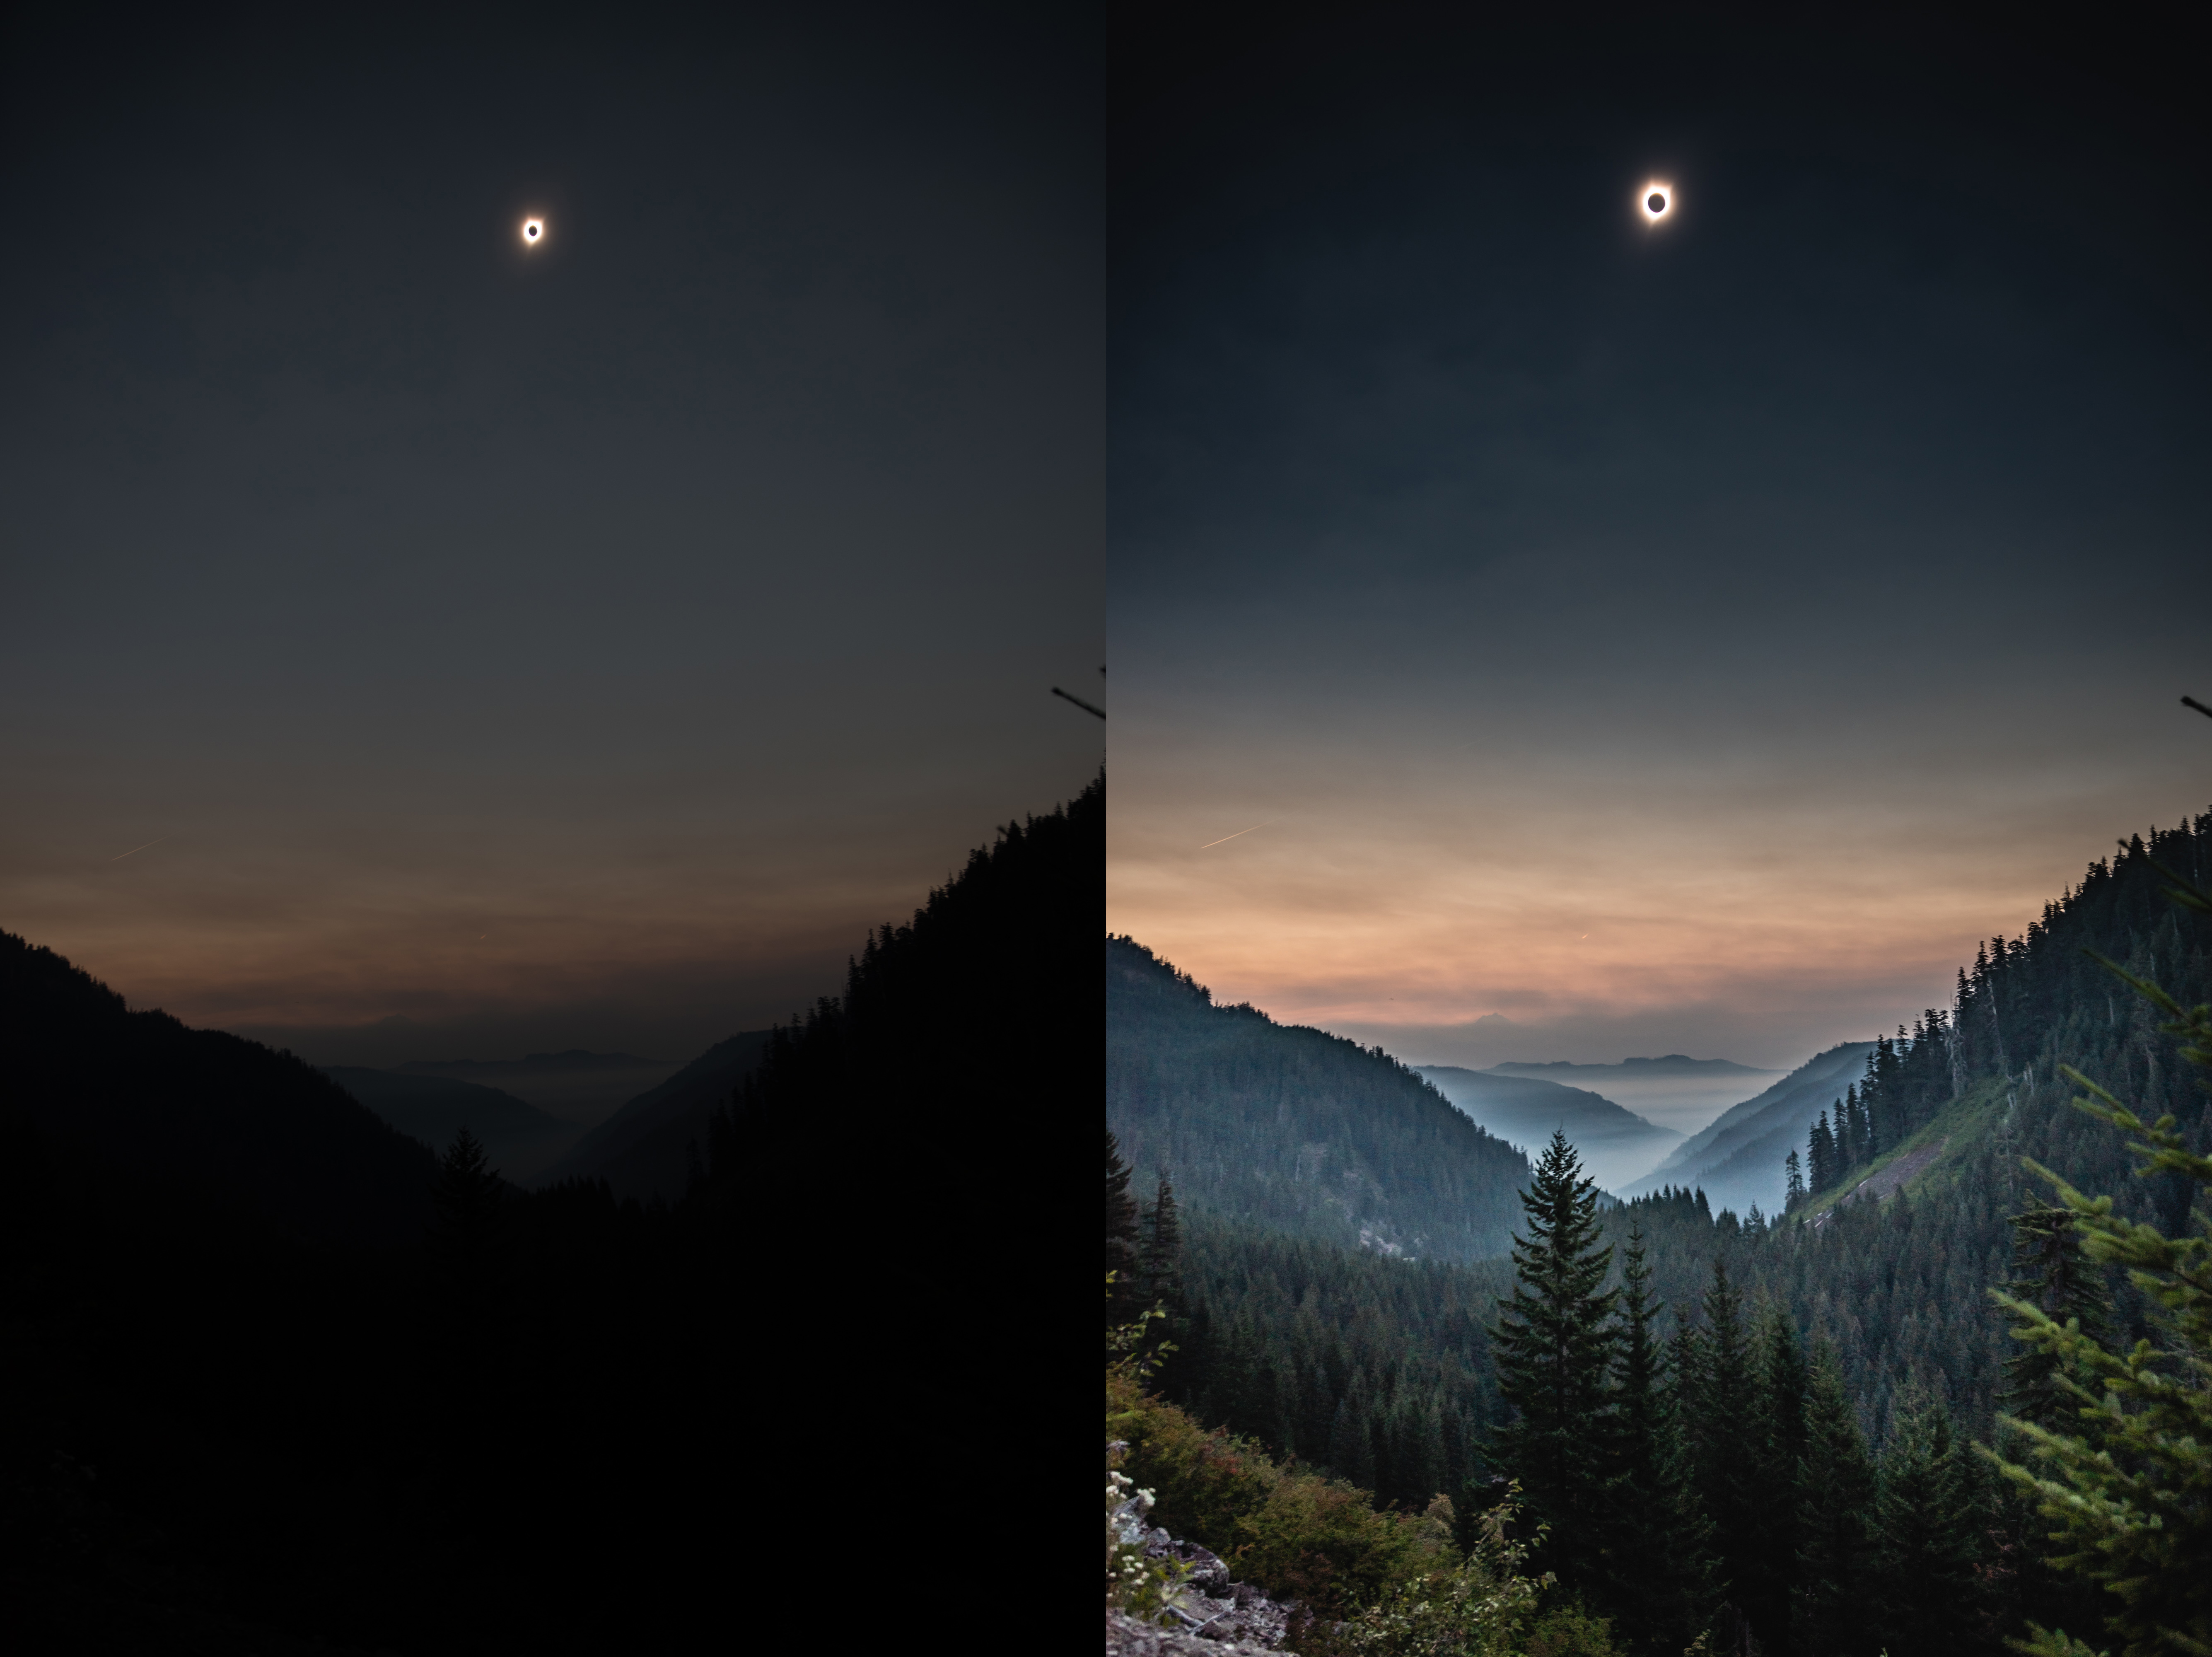 This eclipse photo shows the crazy dynamic range of today's image